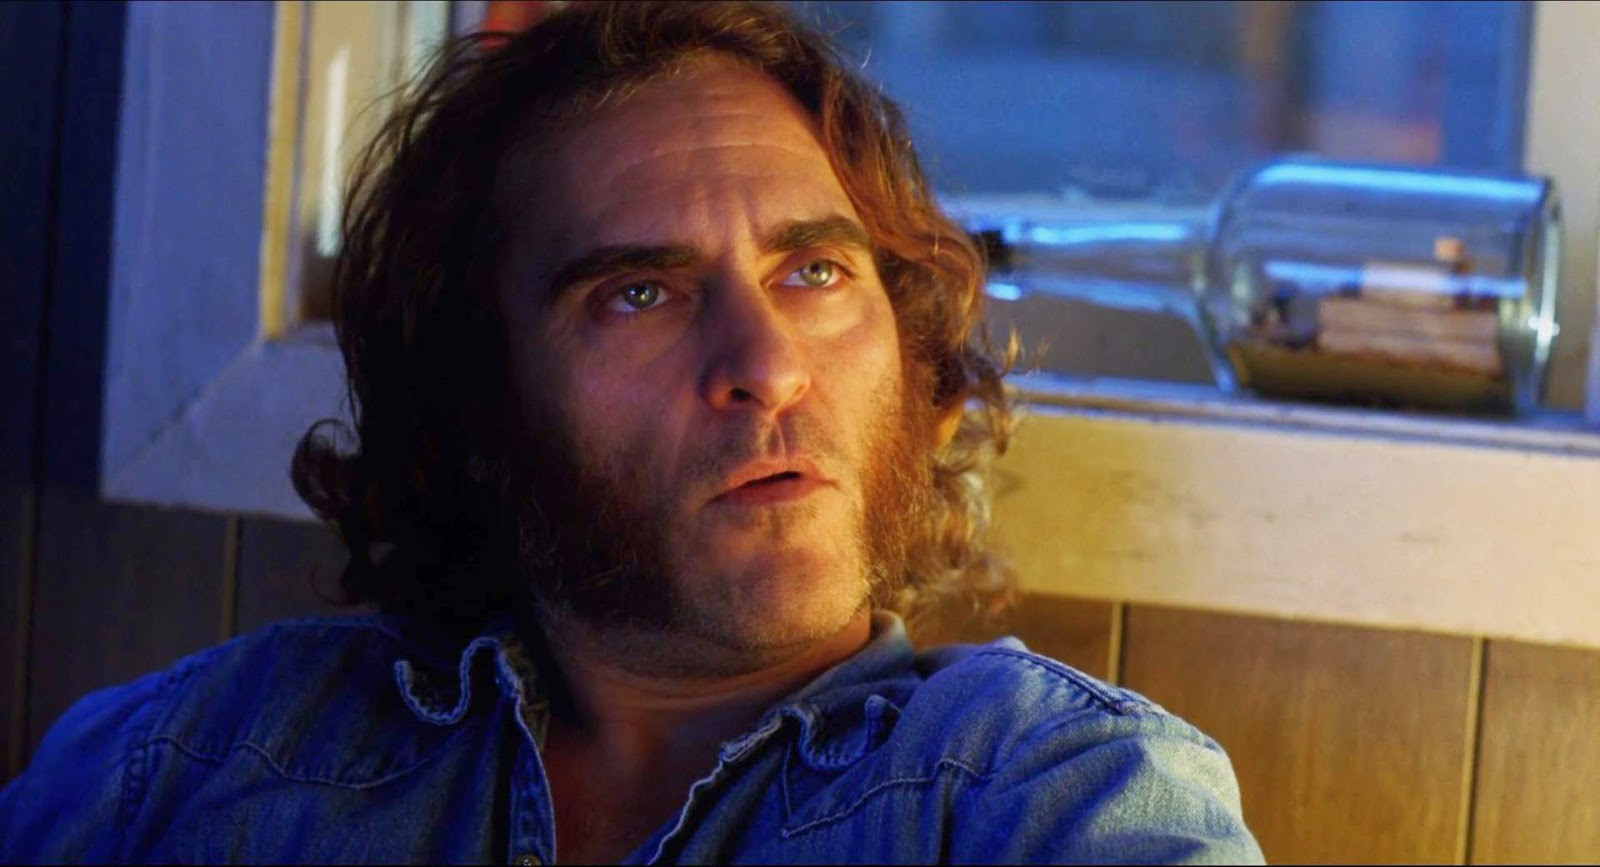 Inherent Vice (2014) 1080p S2 s Inherent Vice (2014) 1080p